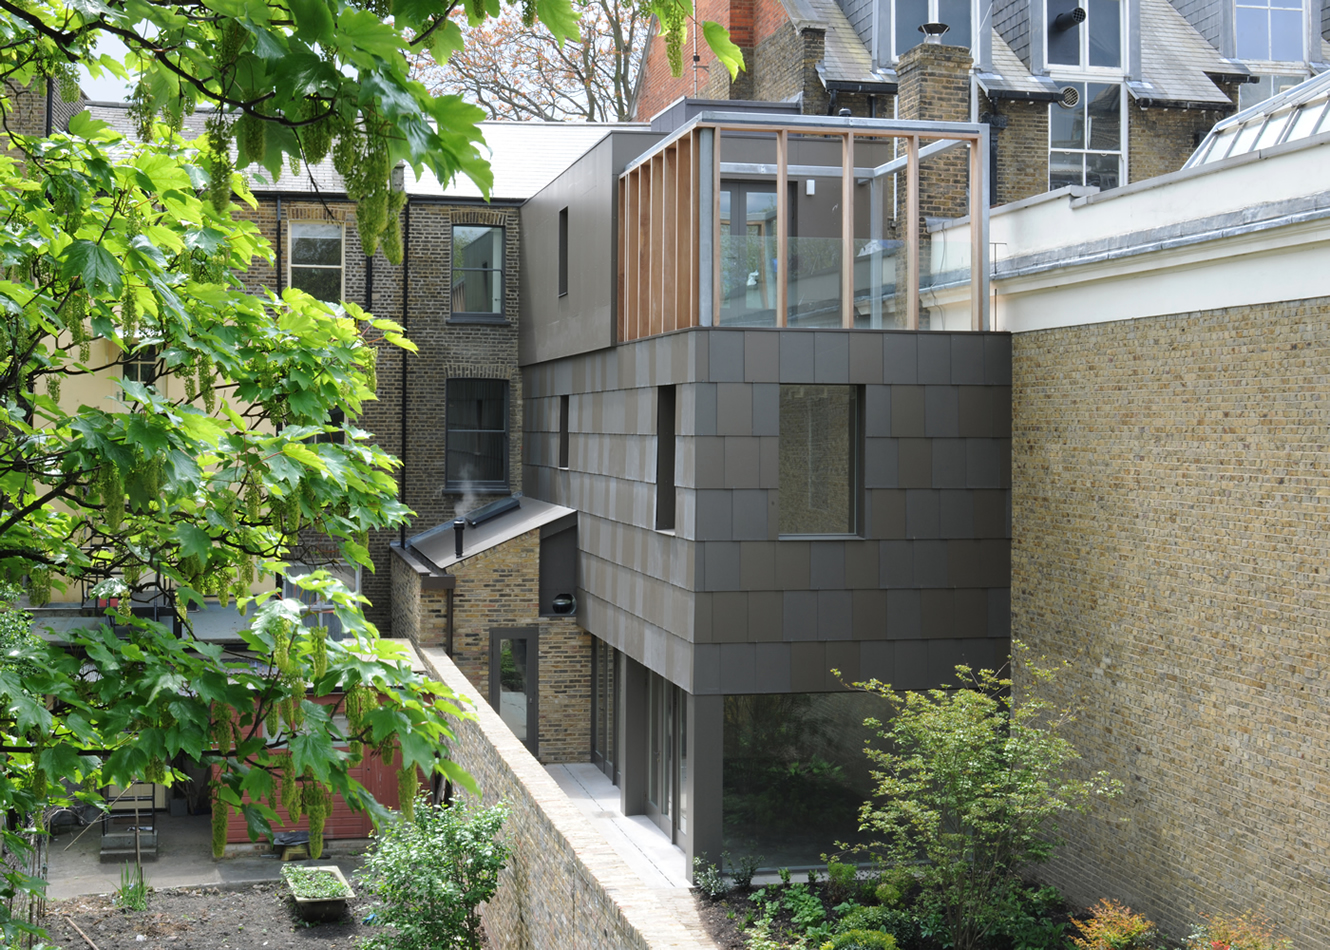 South London Gallery with 6a Architects